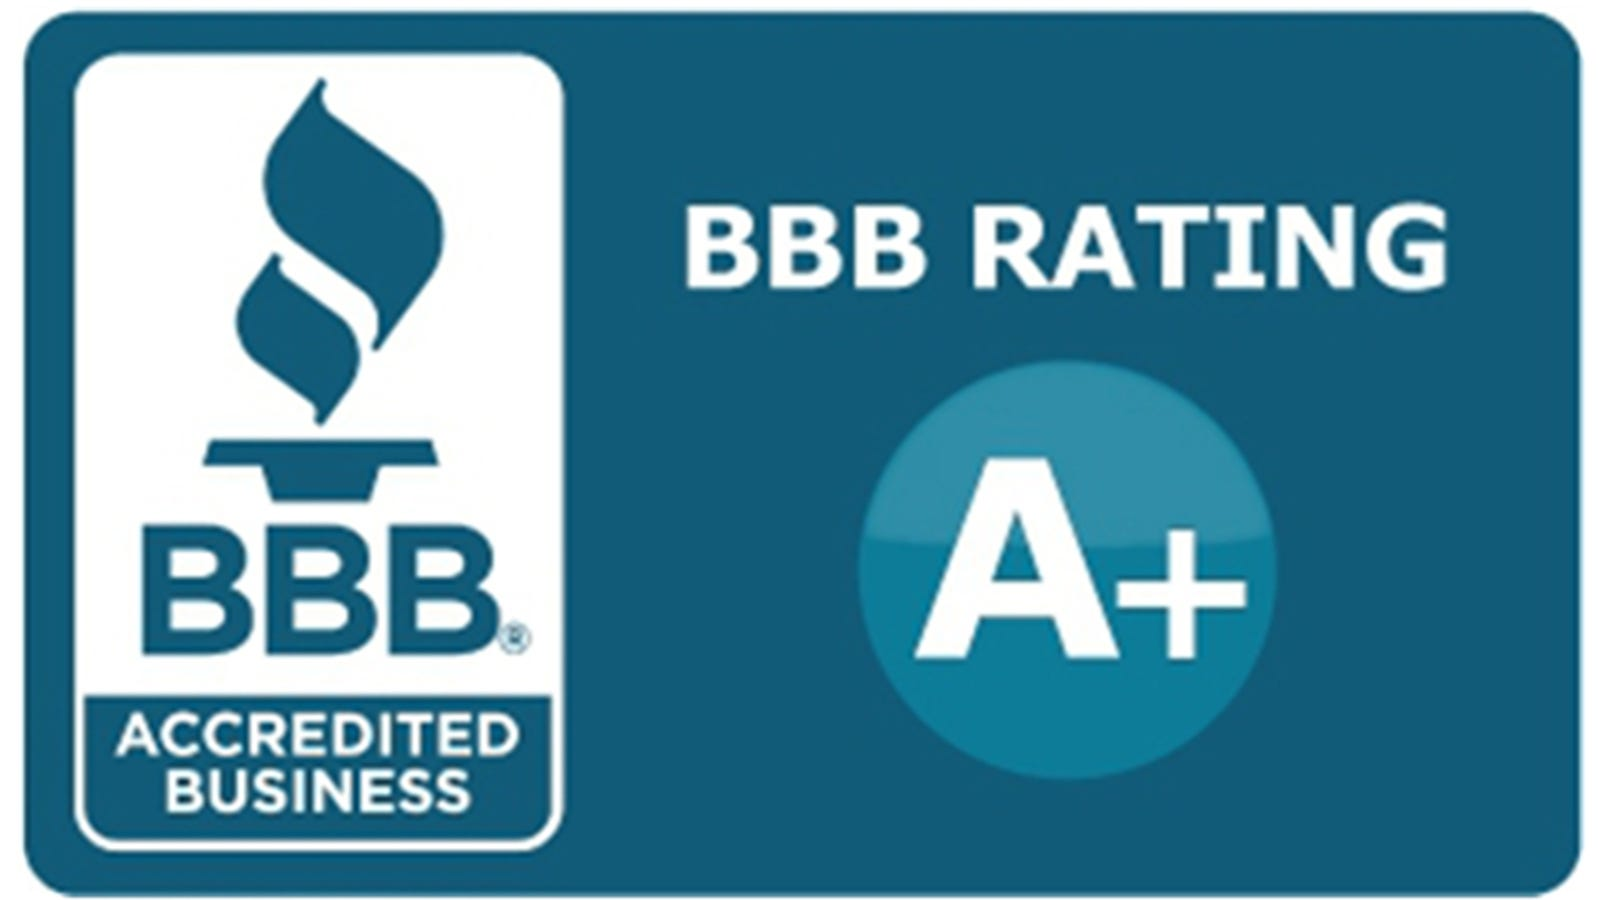 The better business bureau cant help you